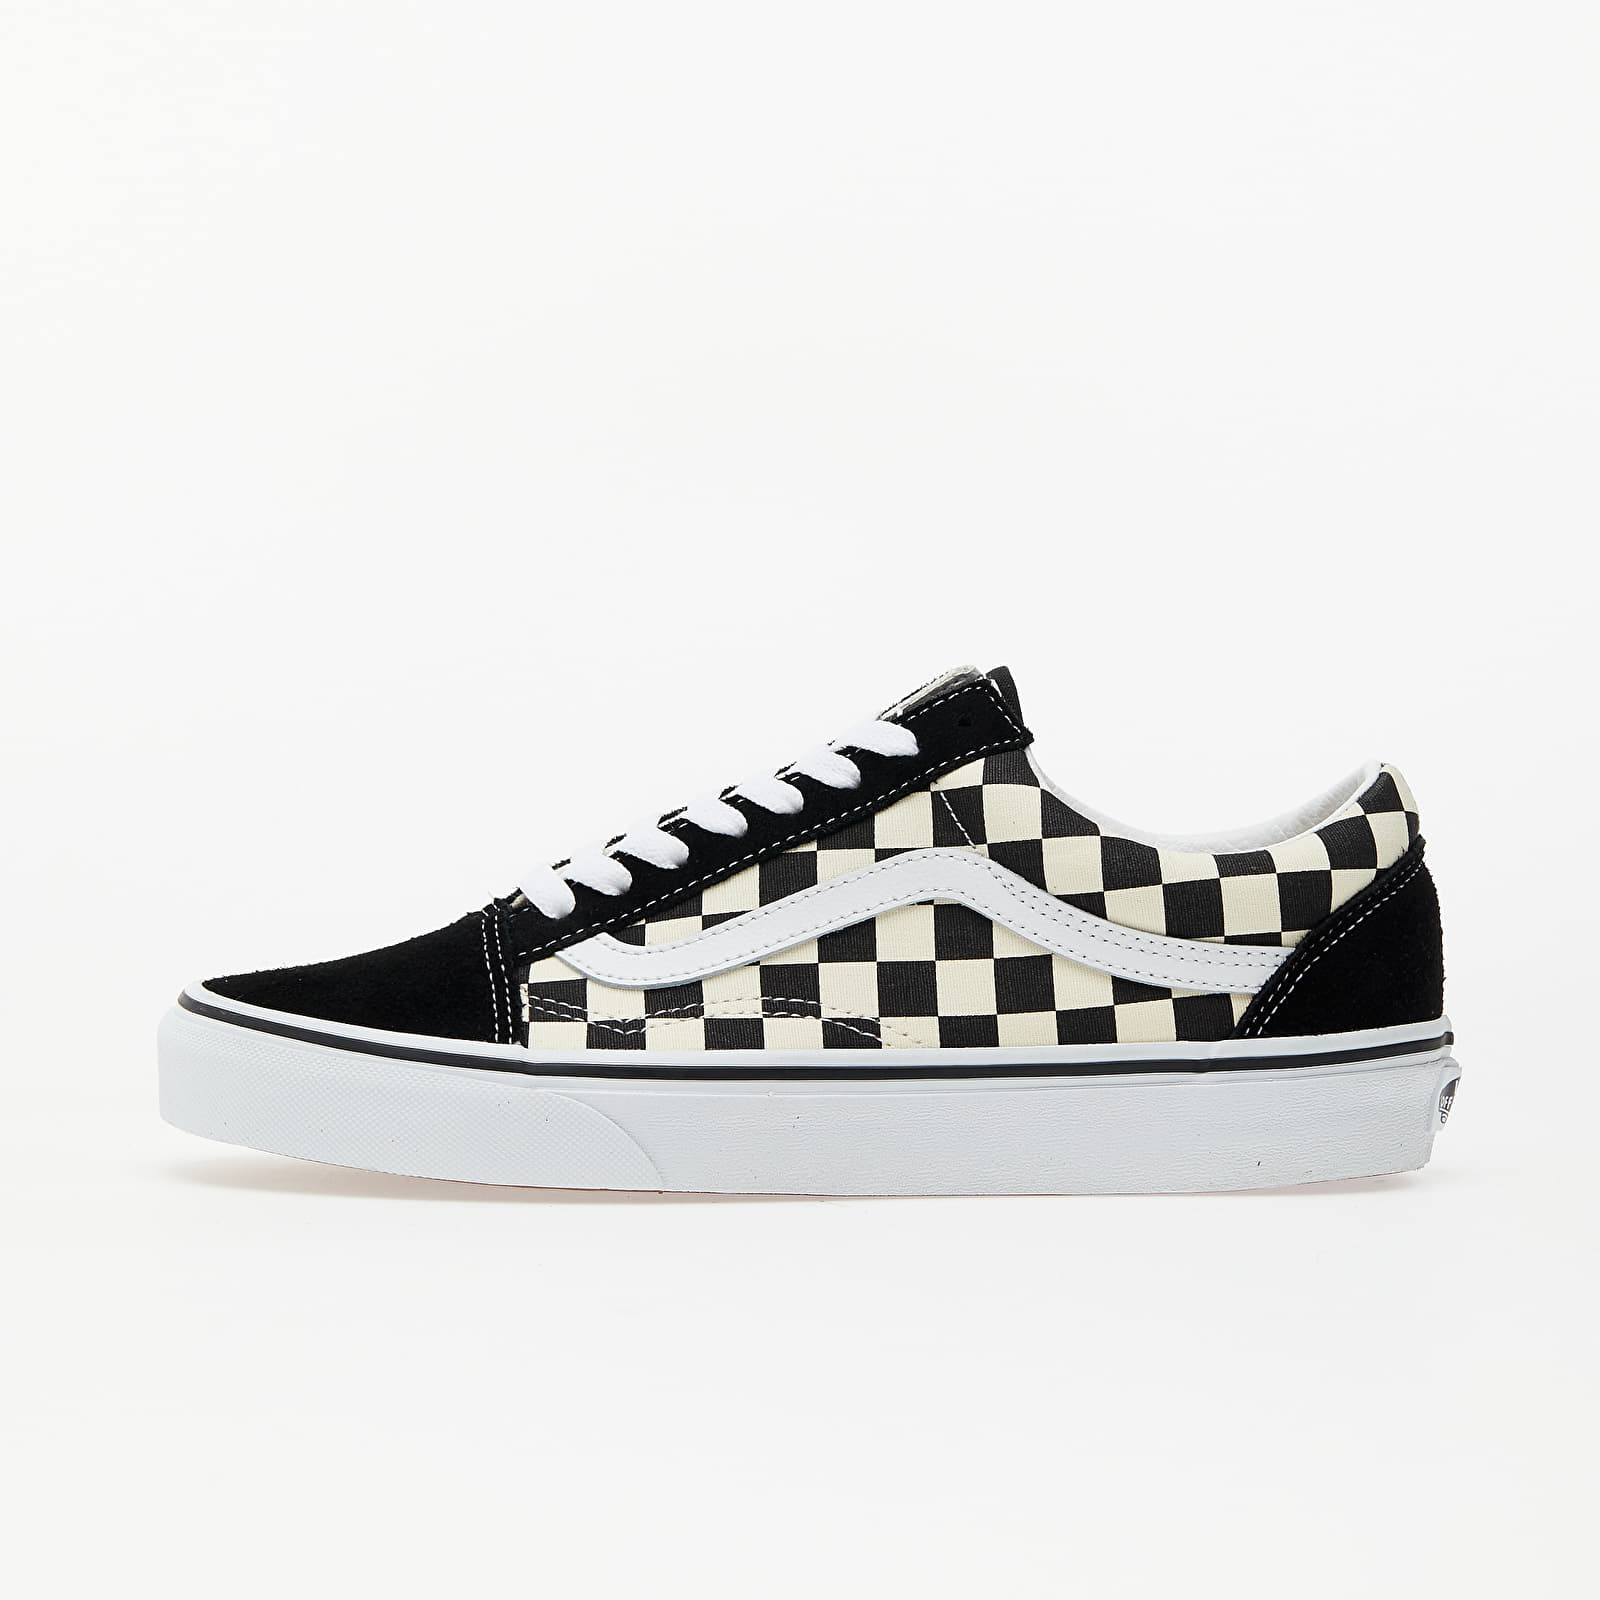 Men's shoes Vans Old Skool (Primary Check) Blk/ White